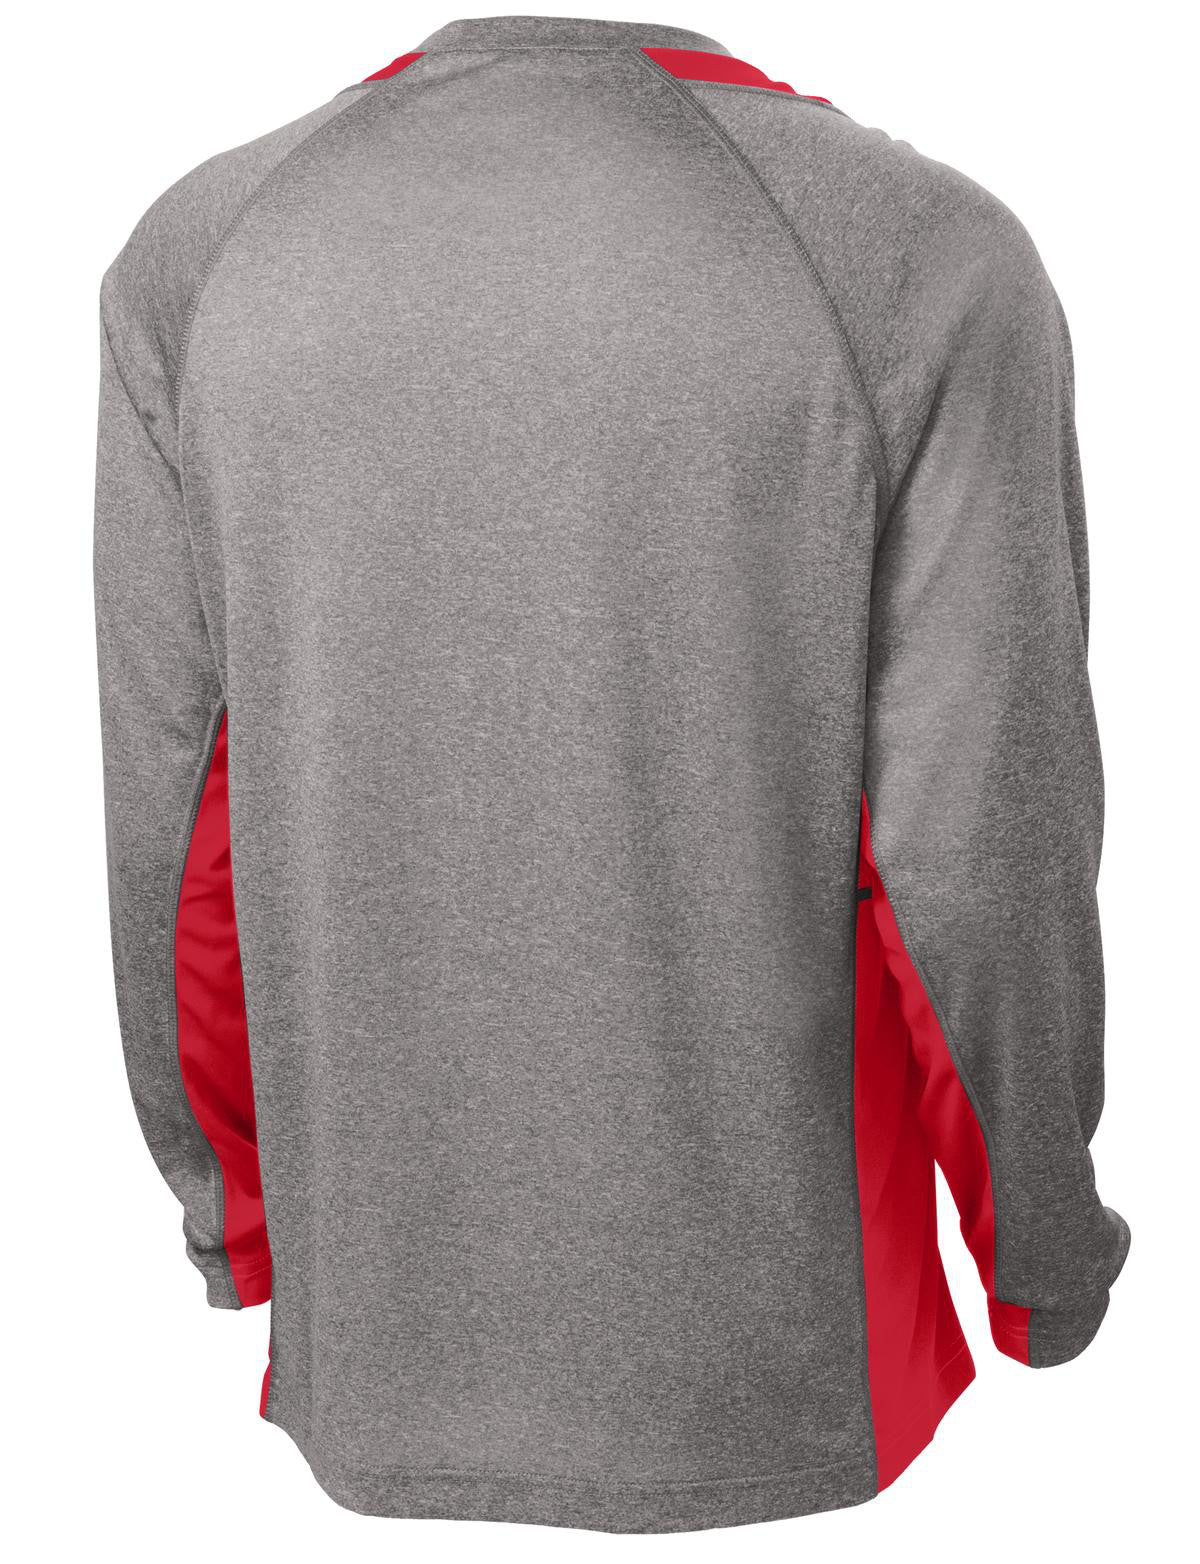 Mafoose Men's Long Sleeve Heather Colorblock Contender Tee Shirt Vintage Heather/ True Red-Back